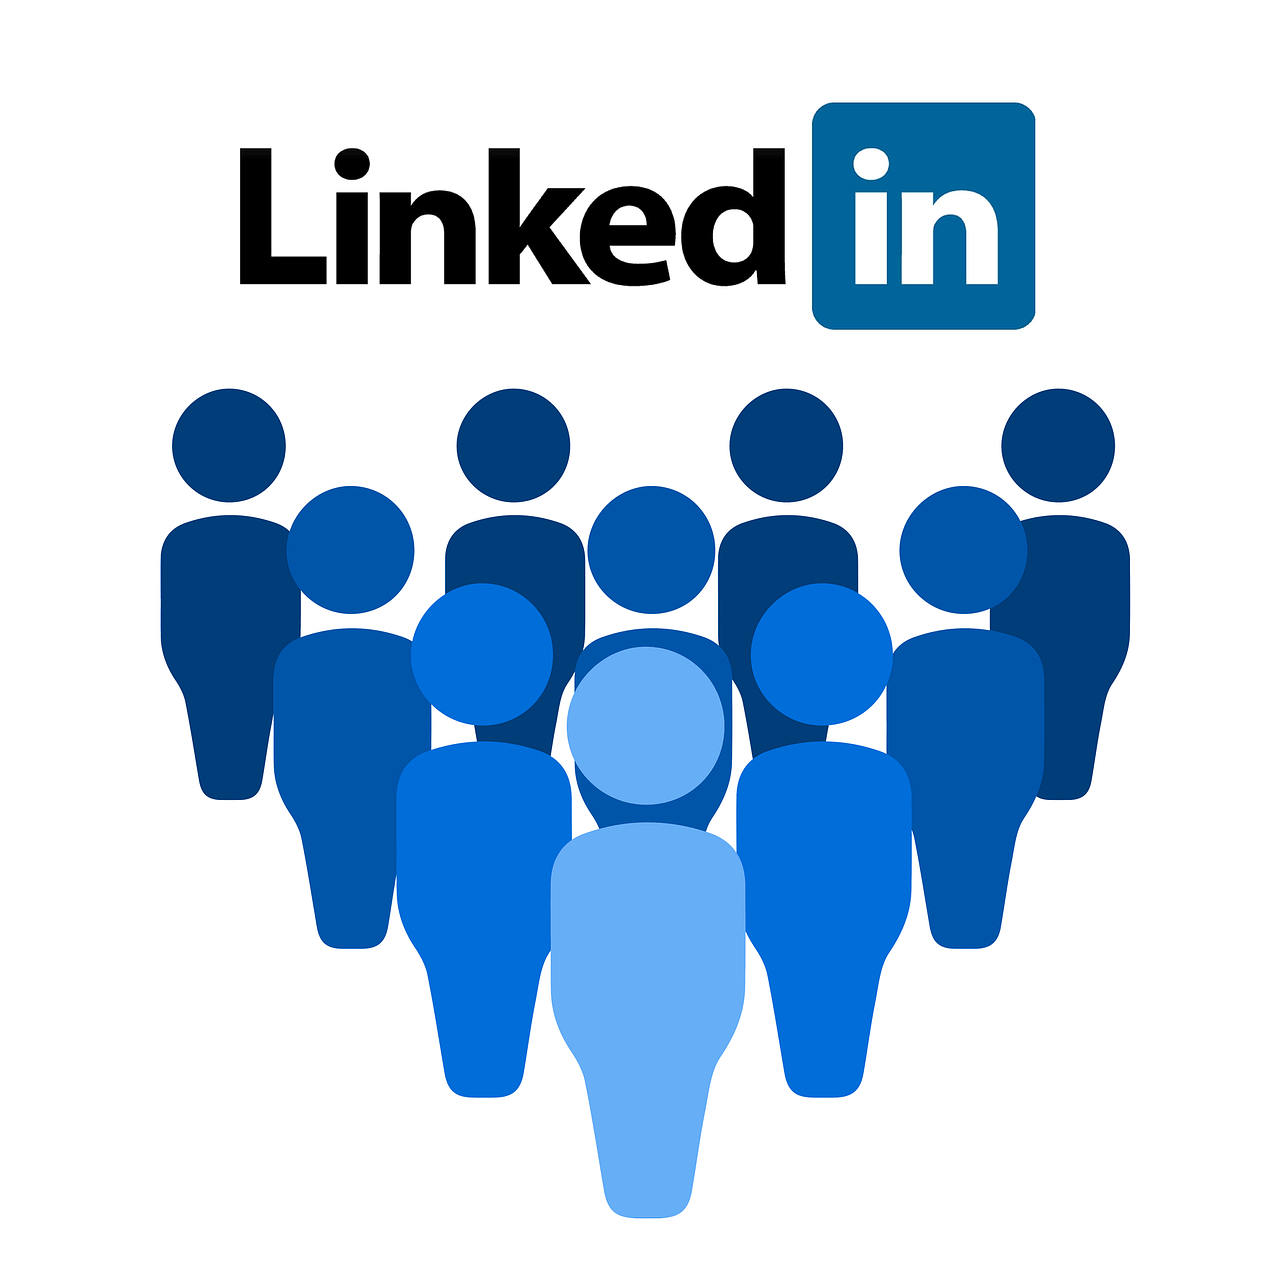 How to Optimize LinkedIn Accounts to Boost Sales?